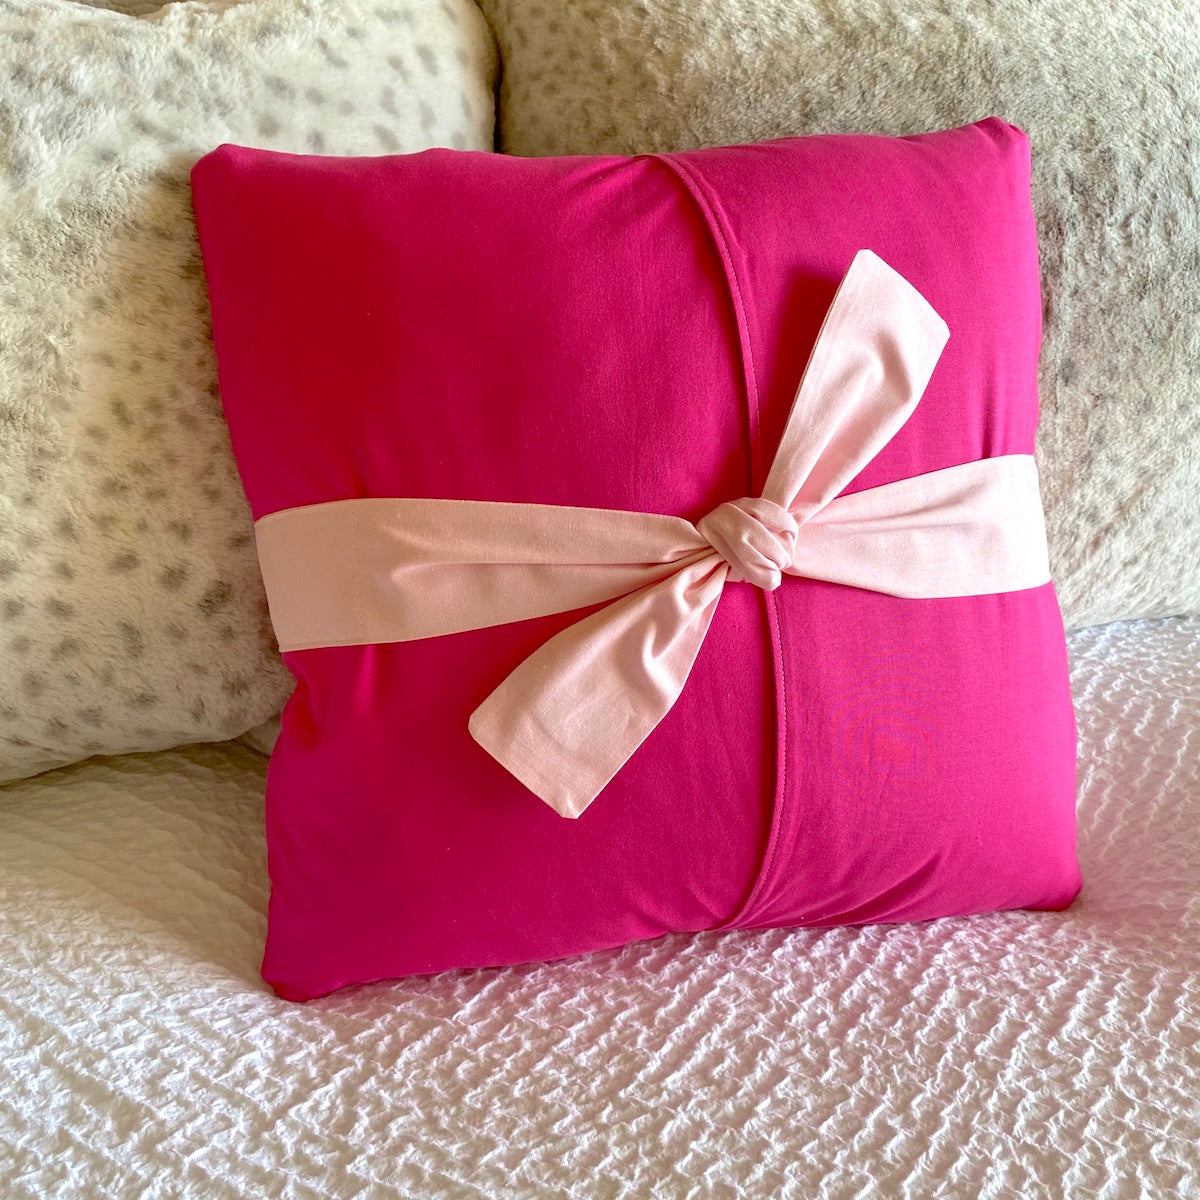 SewPINK Breast Cancer Awareness Ribbon Pillow by Sewfinity